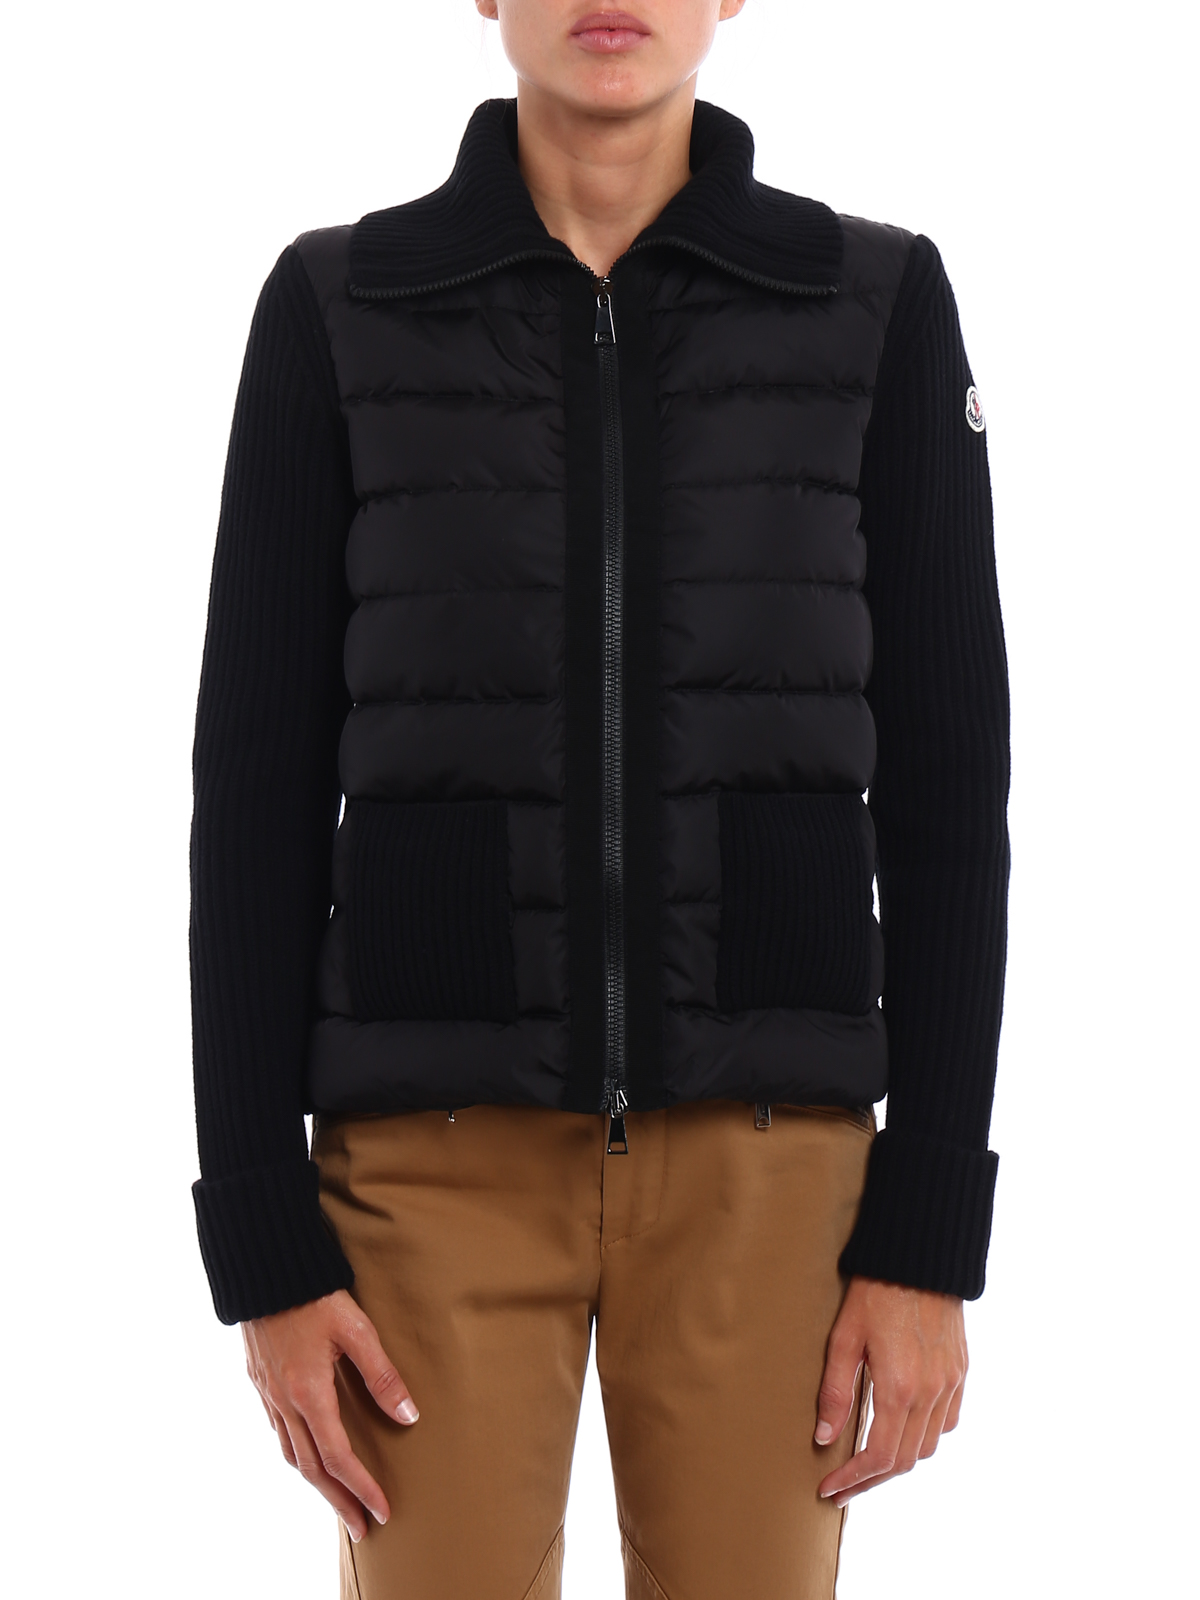 Padded panelled wool cardigan by Moncler - cardigans | iKRIX